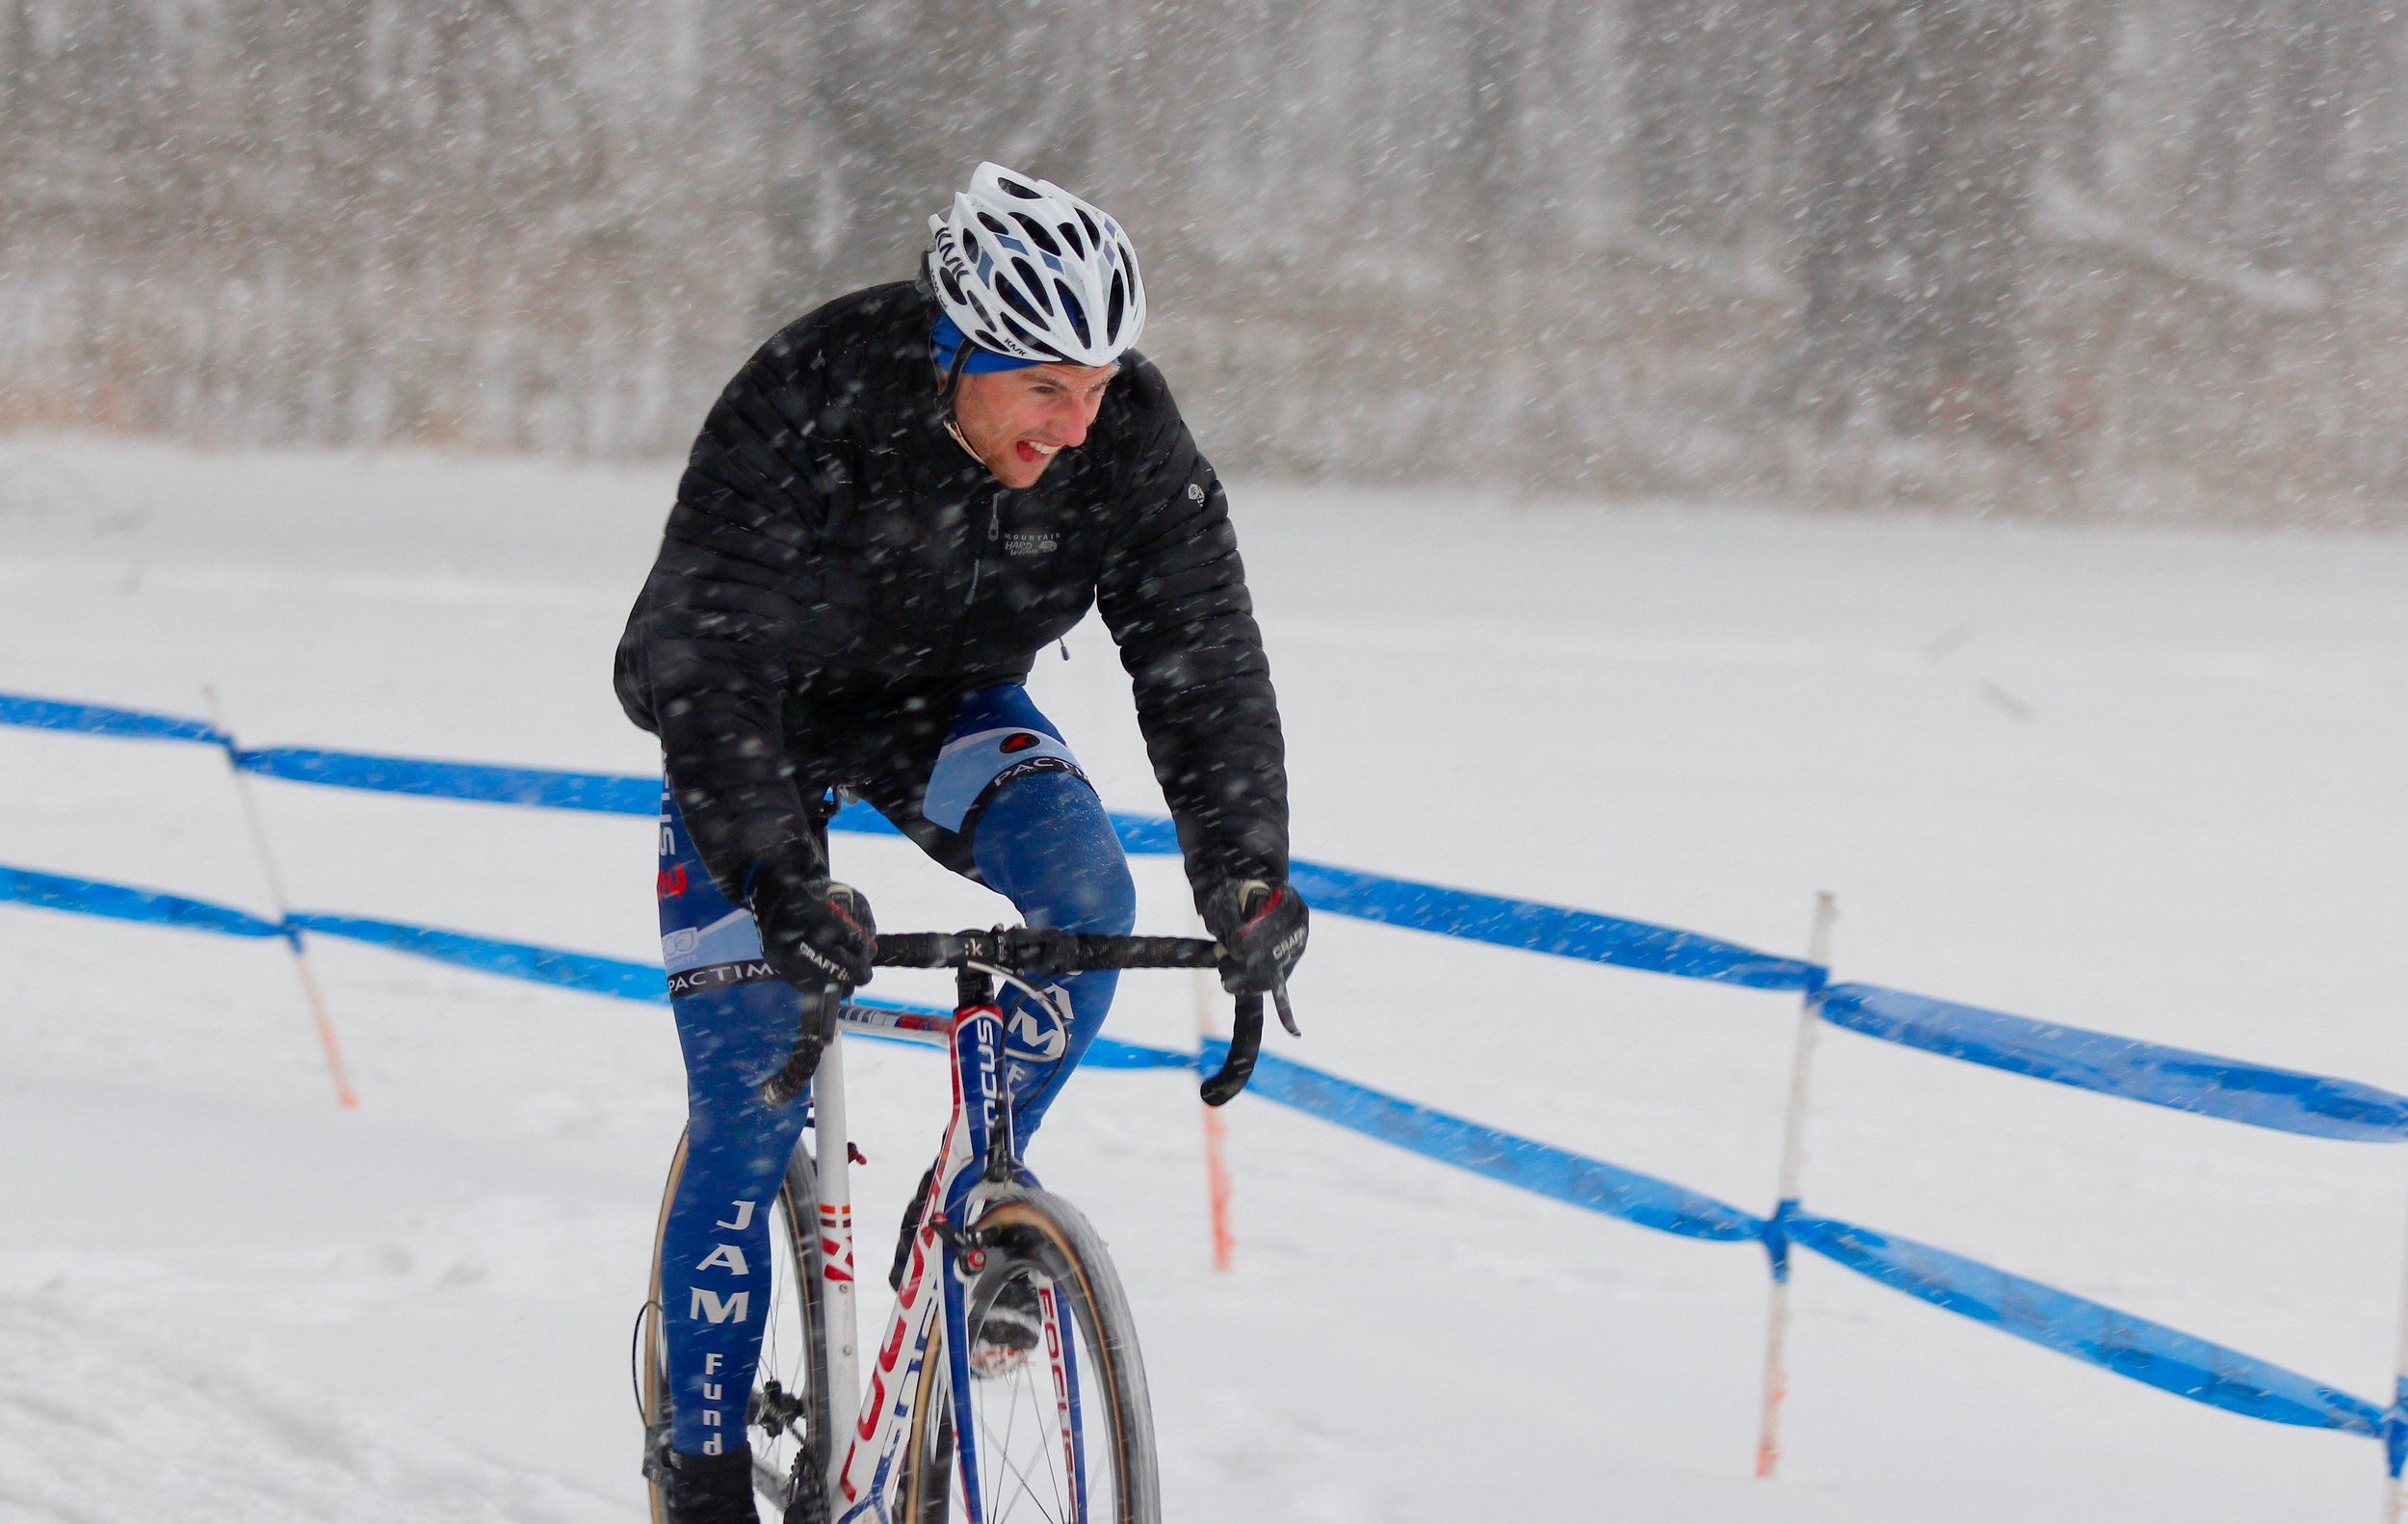 Jack Kisseberth rode the course on Saturday evening in advance of Sunday's championship race. Weather conditions were harsh. The snow was blowing sideways making visibility difficult. The snow is expected to stop before his elite race. Photo by Vicky Sama